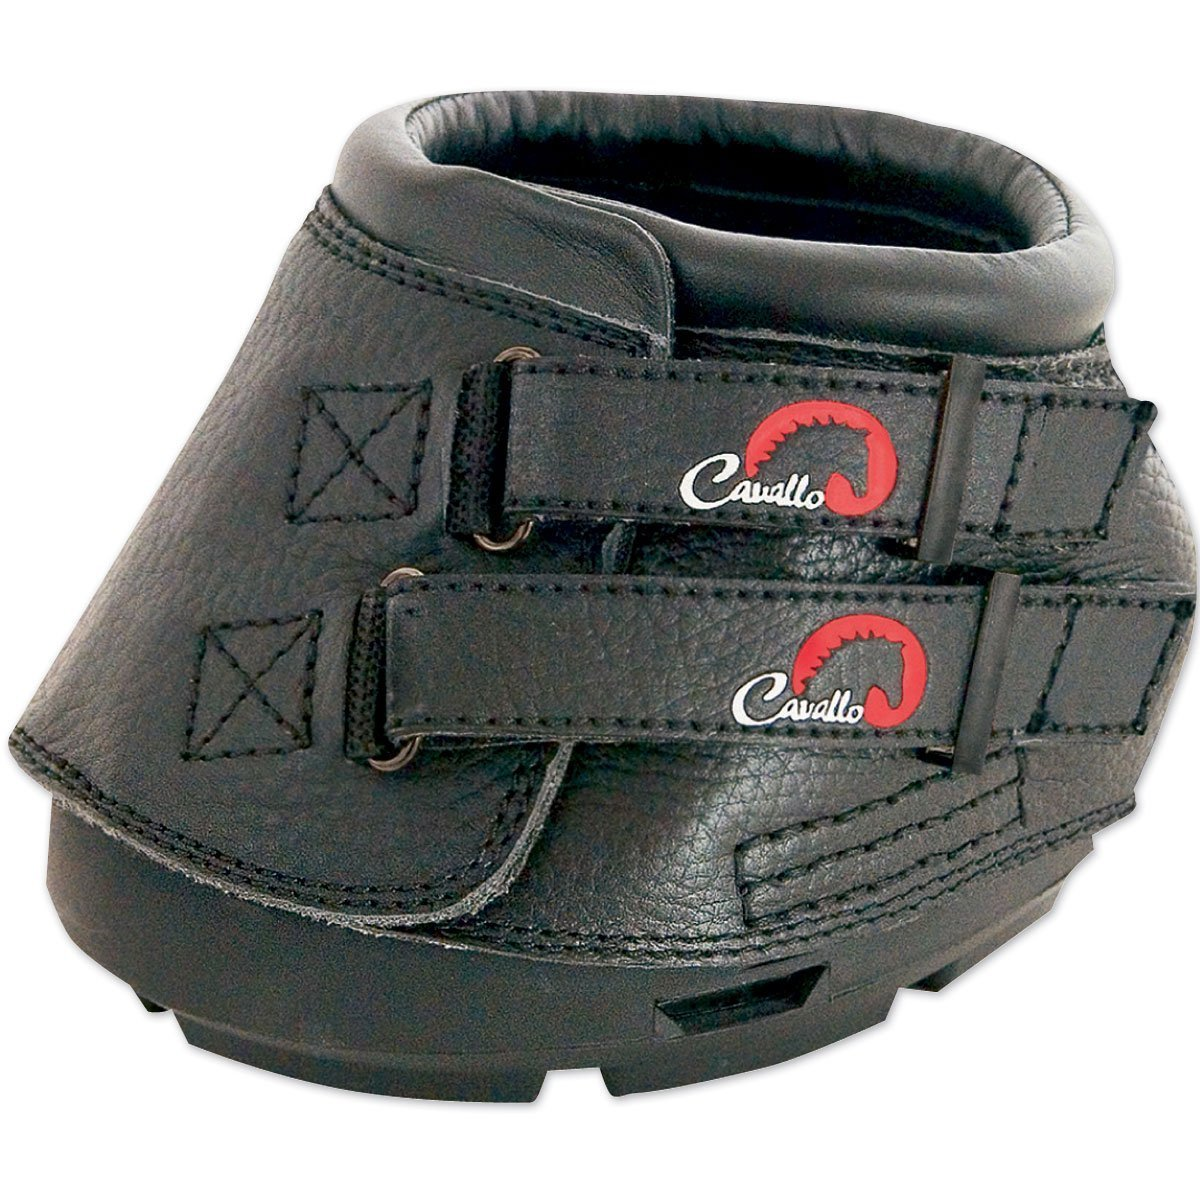 Cavallo Simple Boot color Black Size 04 by Cavallo